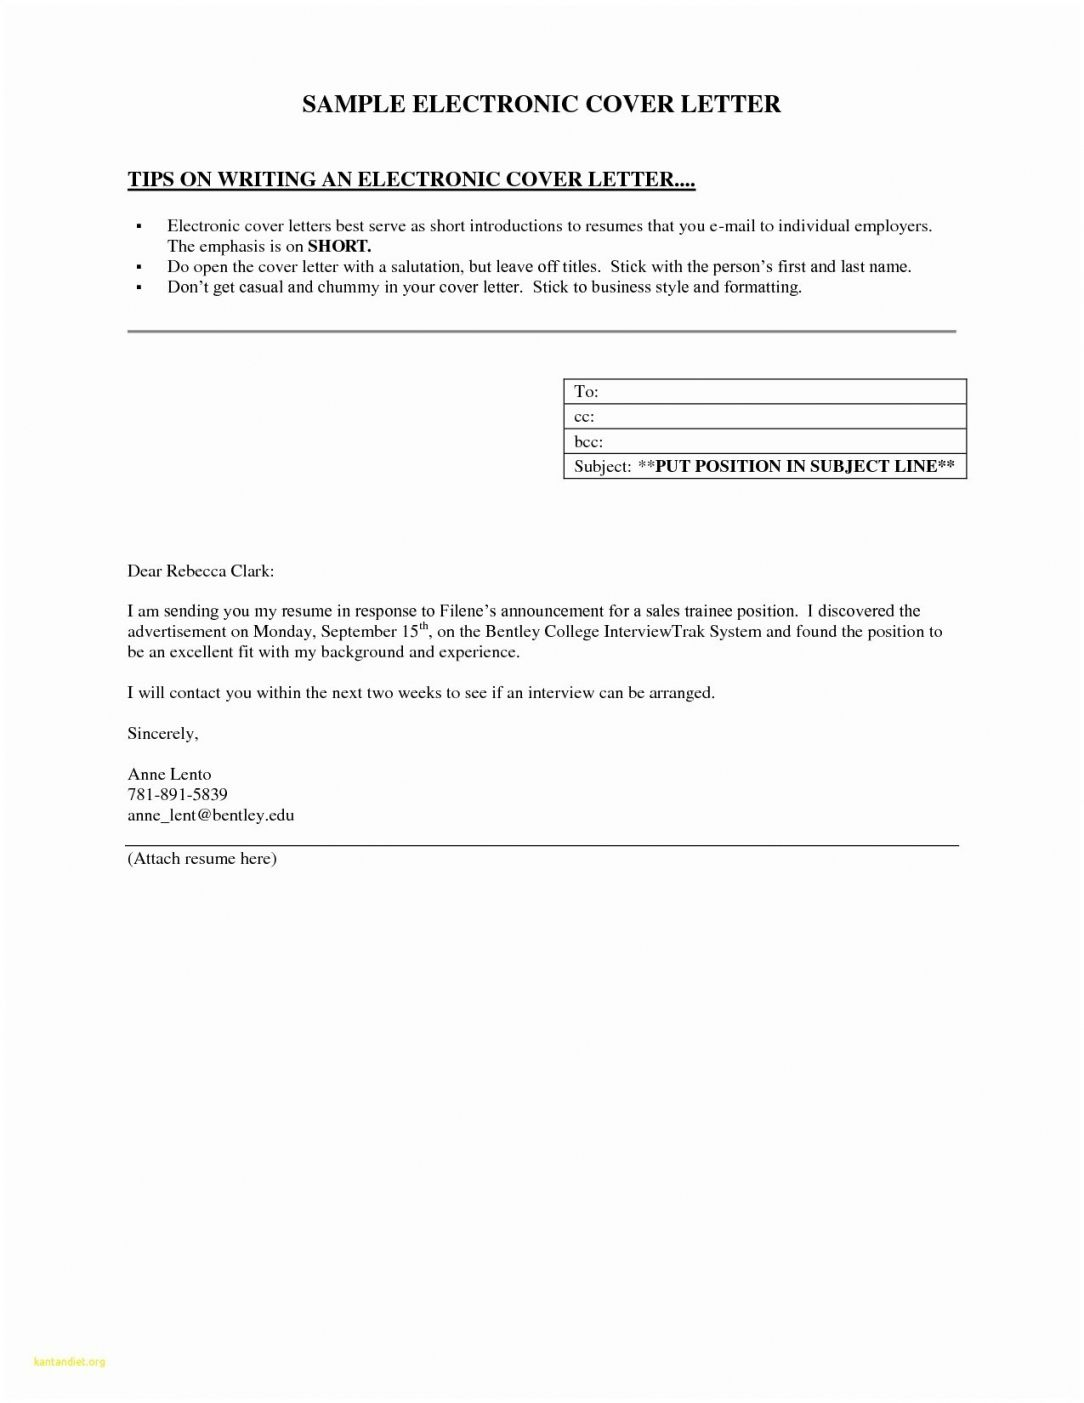 25 Email Cover Letter In 2020 Cover Letter For Resume Email Cover Letter Cover Letter Format